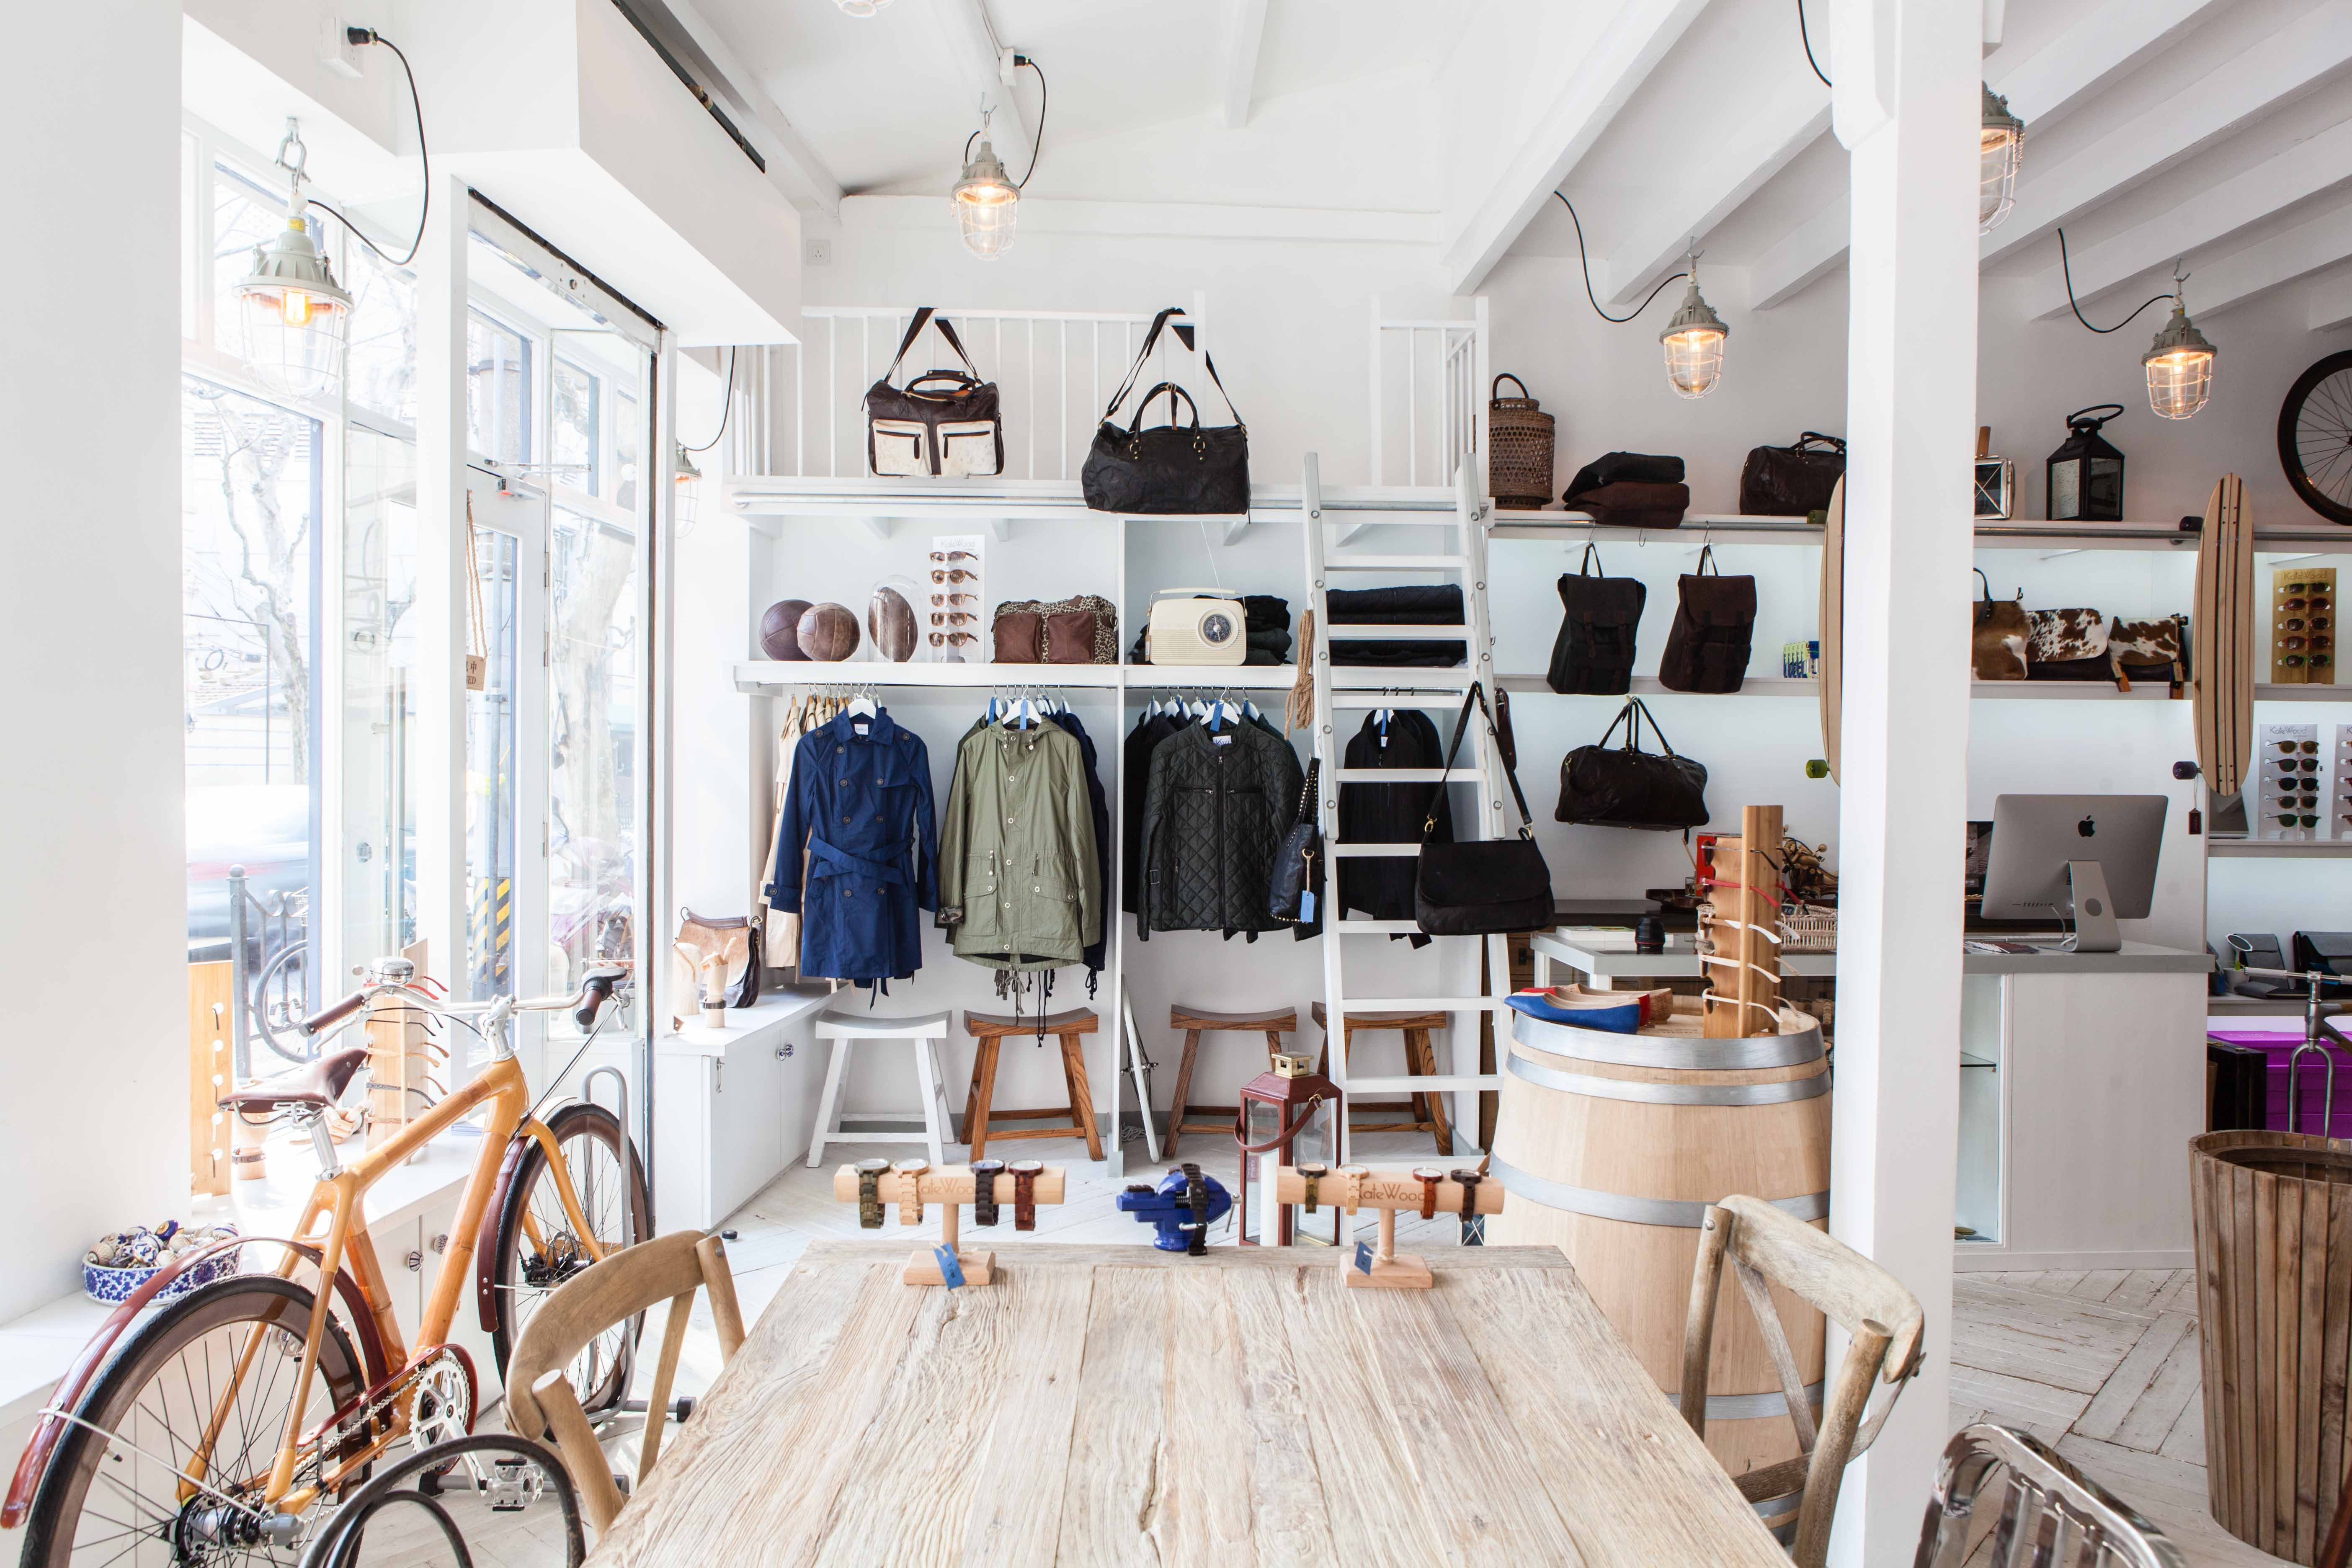 Kate-Wood-wooden-products-visit-us-at-flagshipstore-in-Shanghai-left